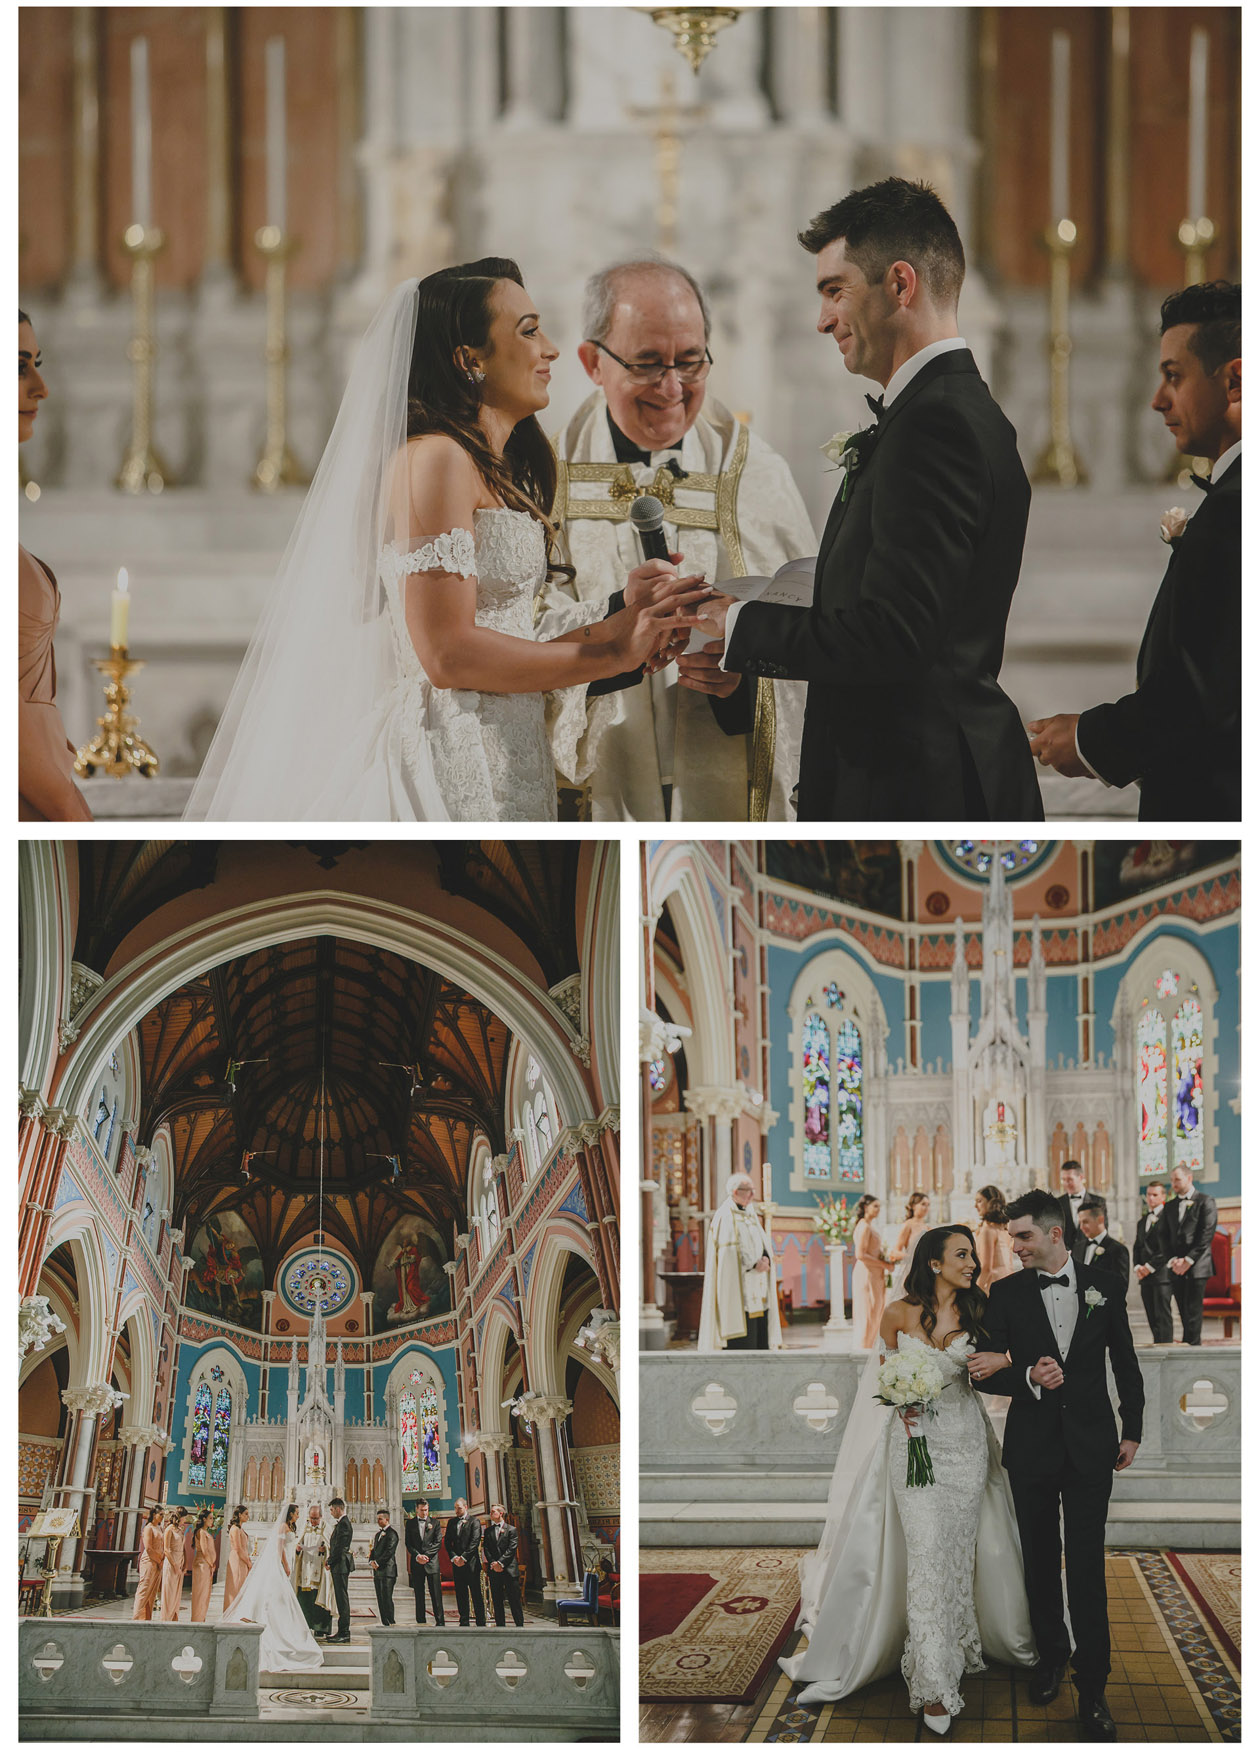 The bride and groom held a grand wedding in St Mary church